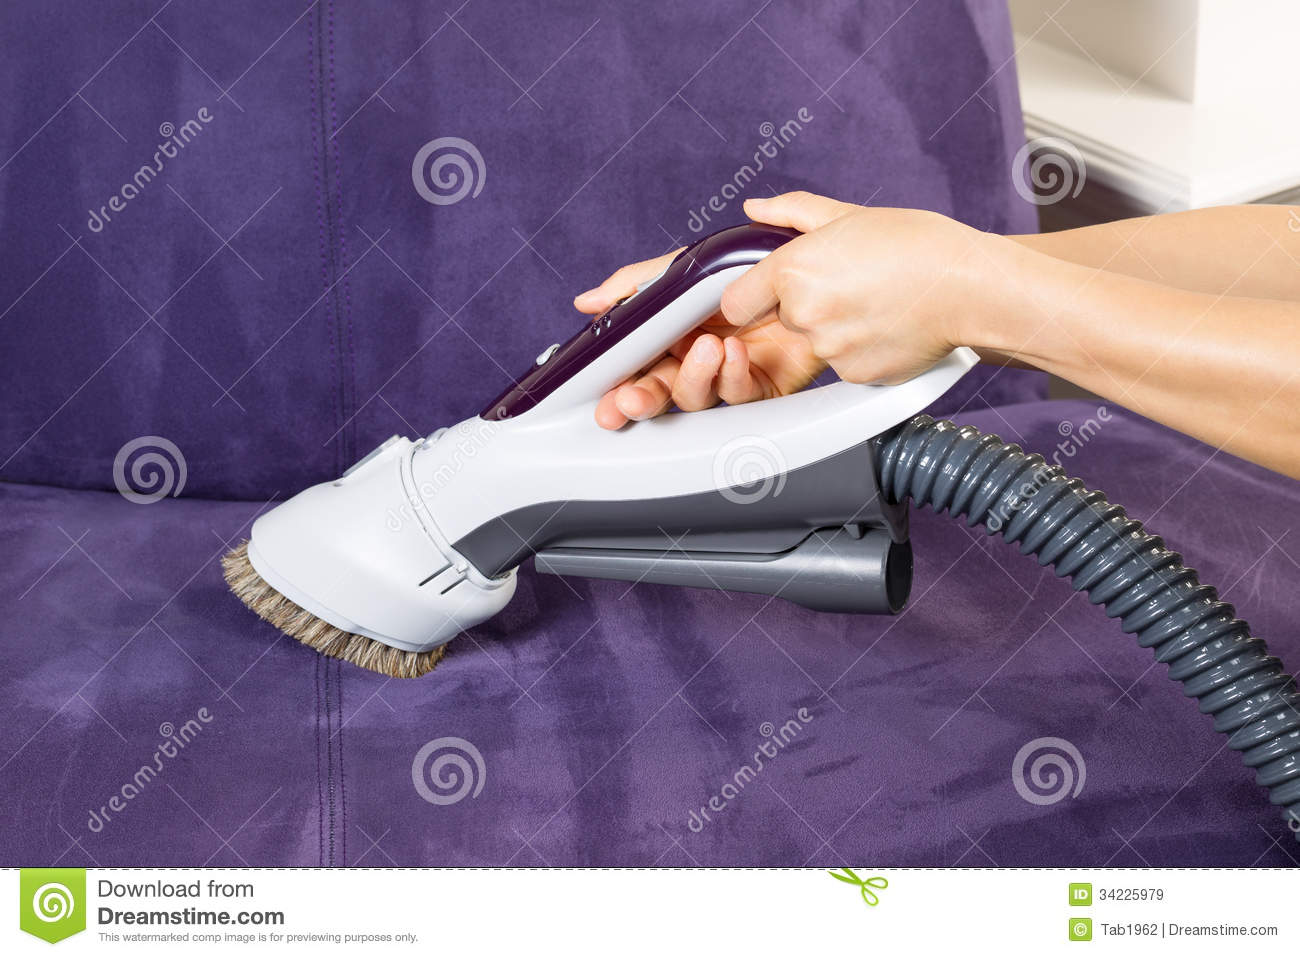 Sofa Vacuum Cleaner Brush Cleaning Leather Sofa With Vacuum Brush Stock Image Image Of